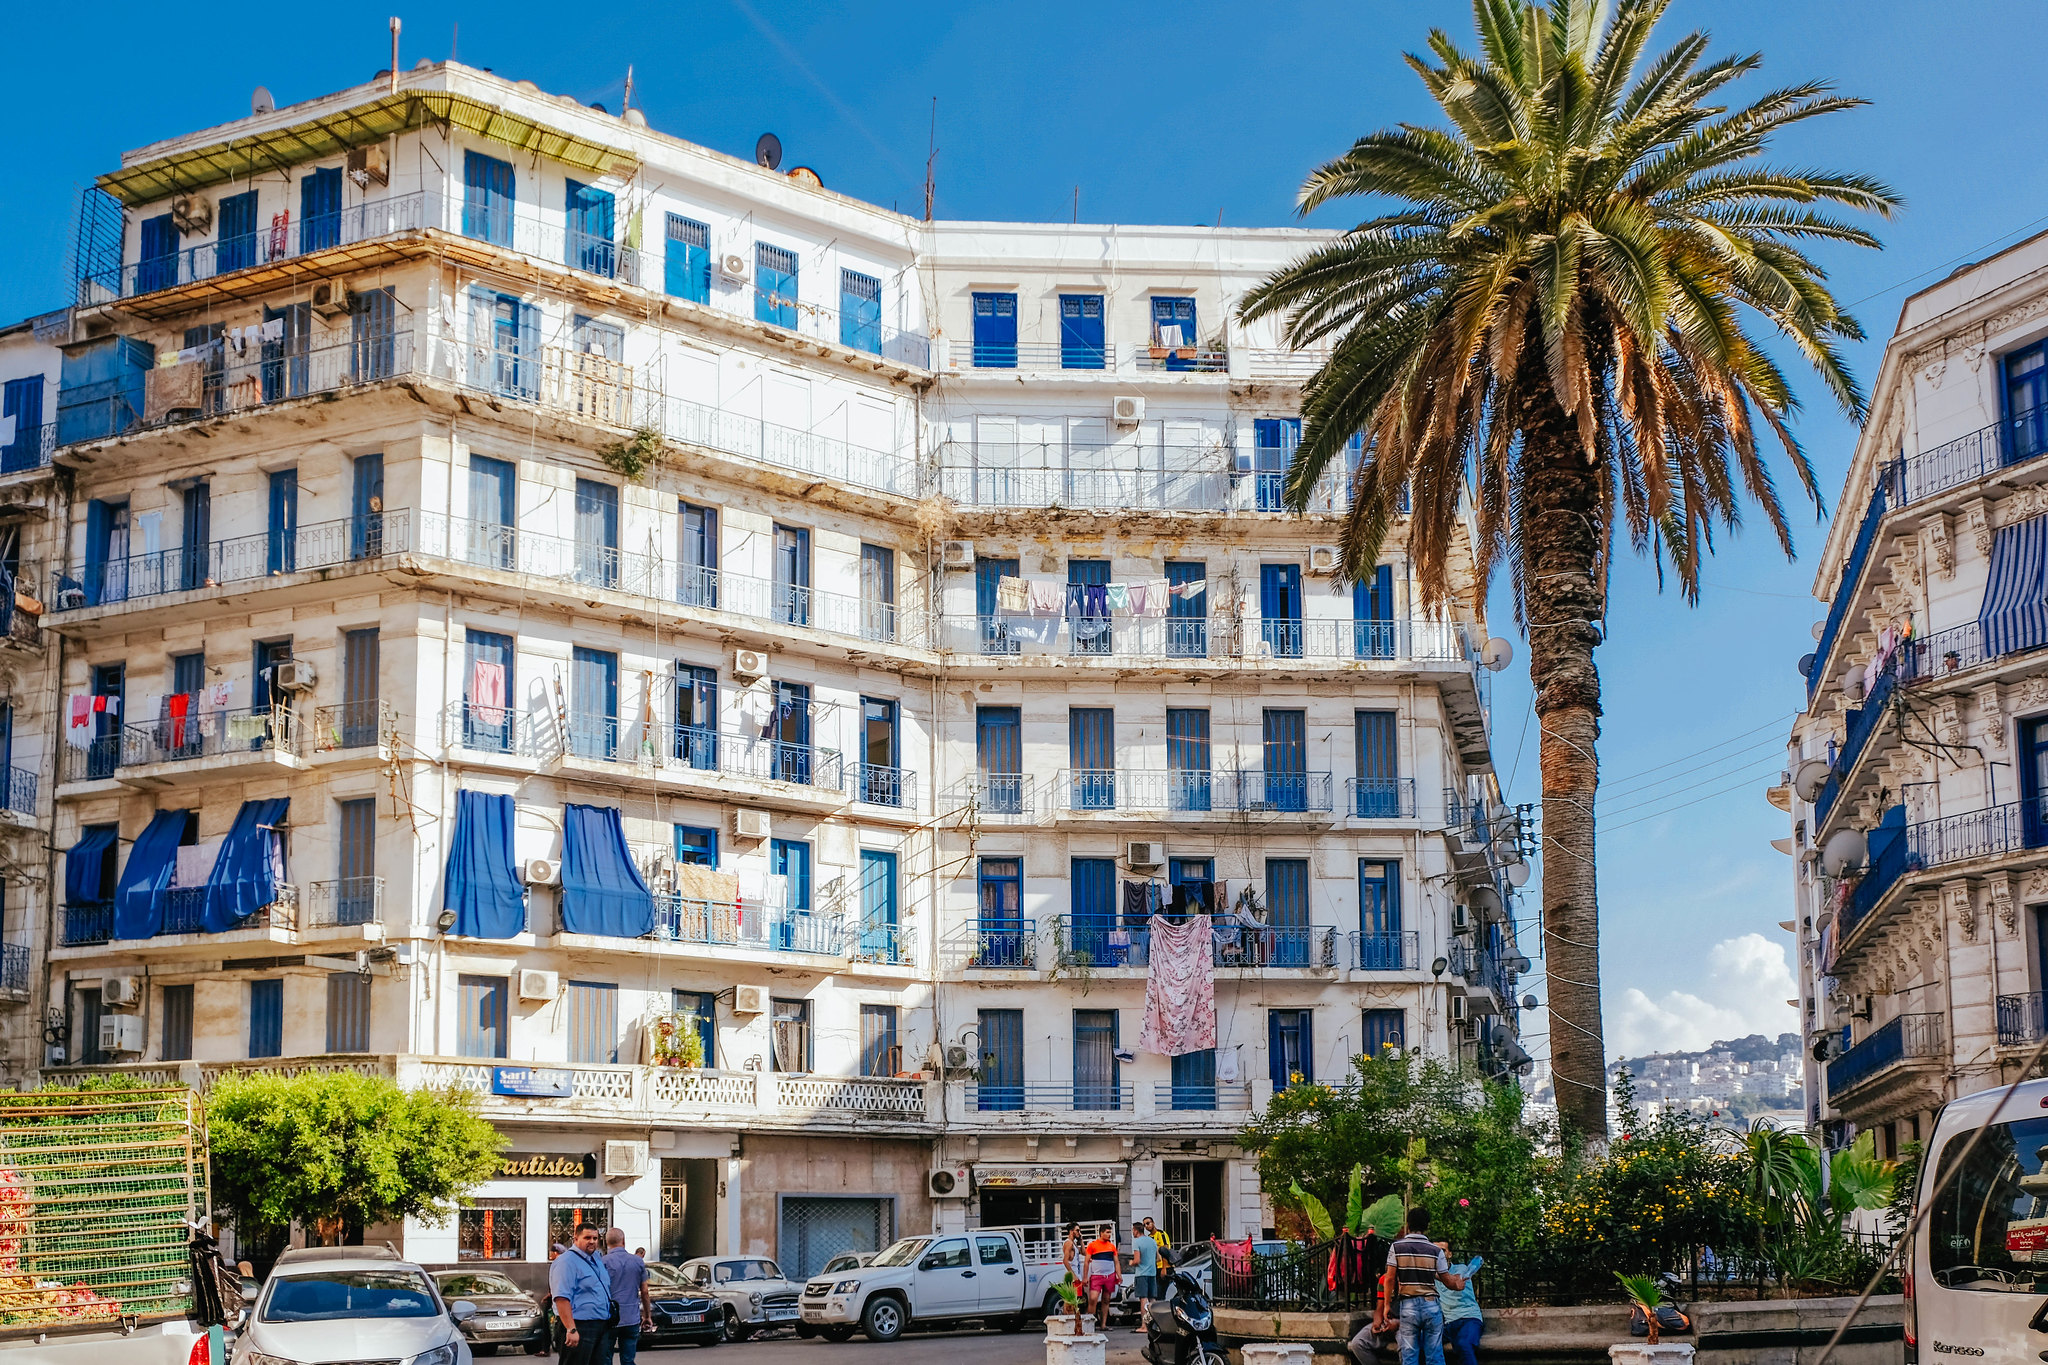 Streets of Algiers